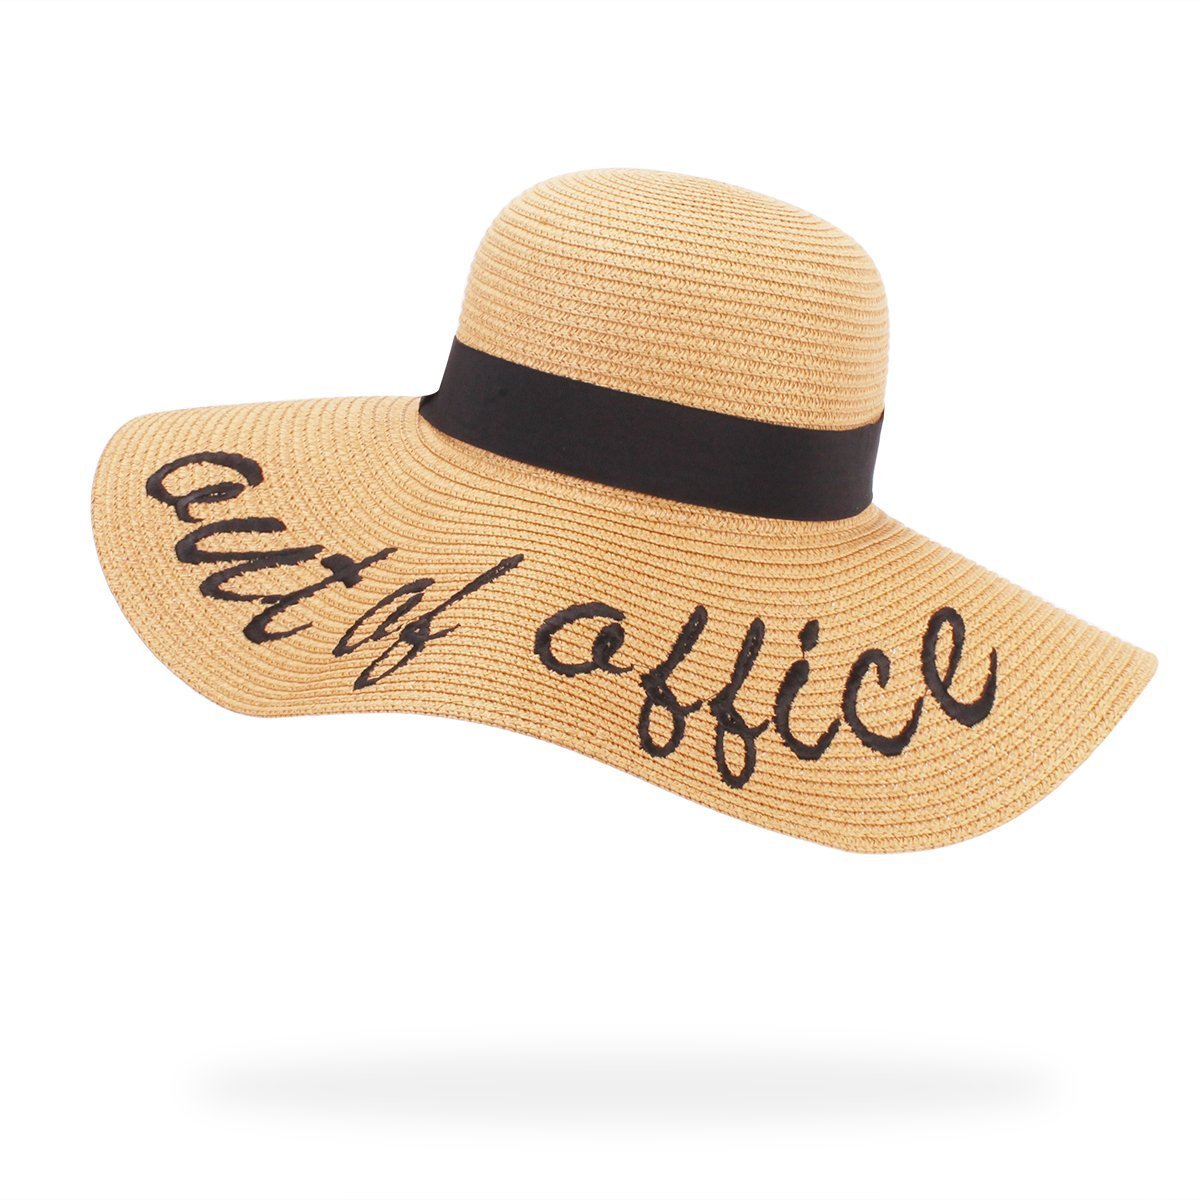 Jane Shine Beach Sun Hat Out of Office Embroidered Wide Brim Straw Floppy